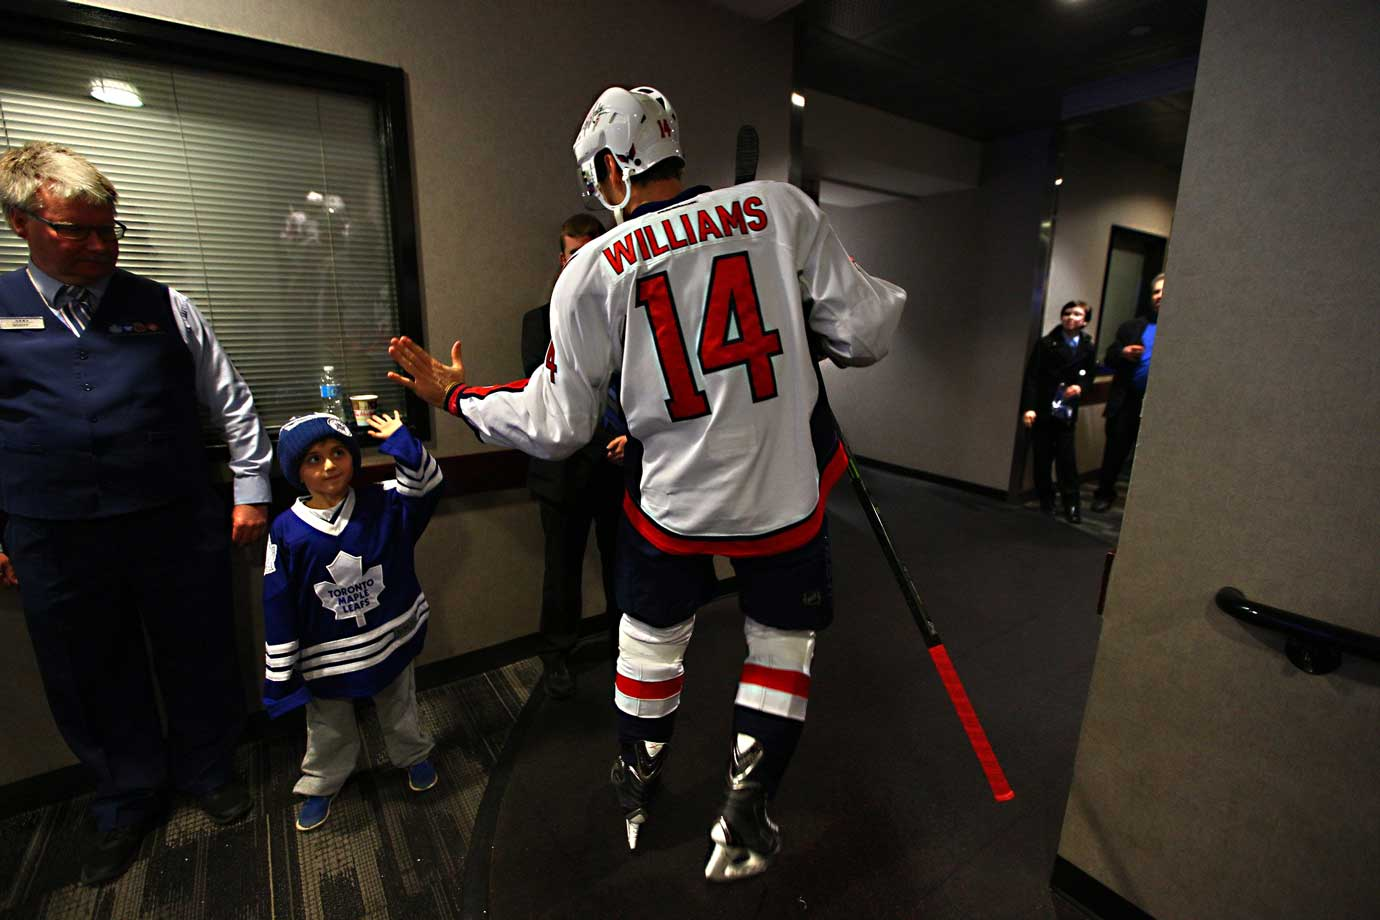 On his way out to the ice, the Capitals' veteran forward greets an enemy fan.